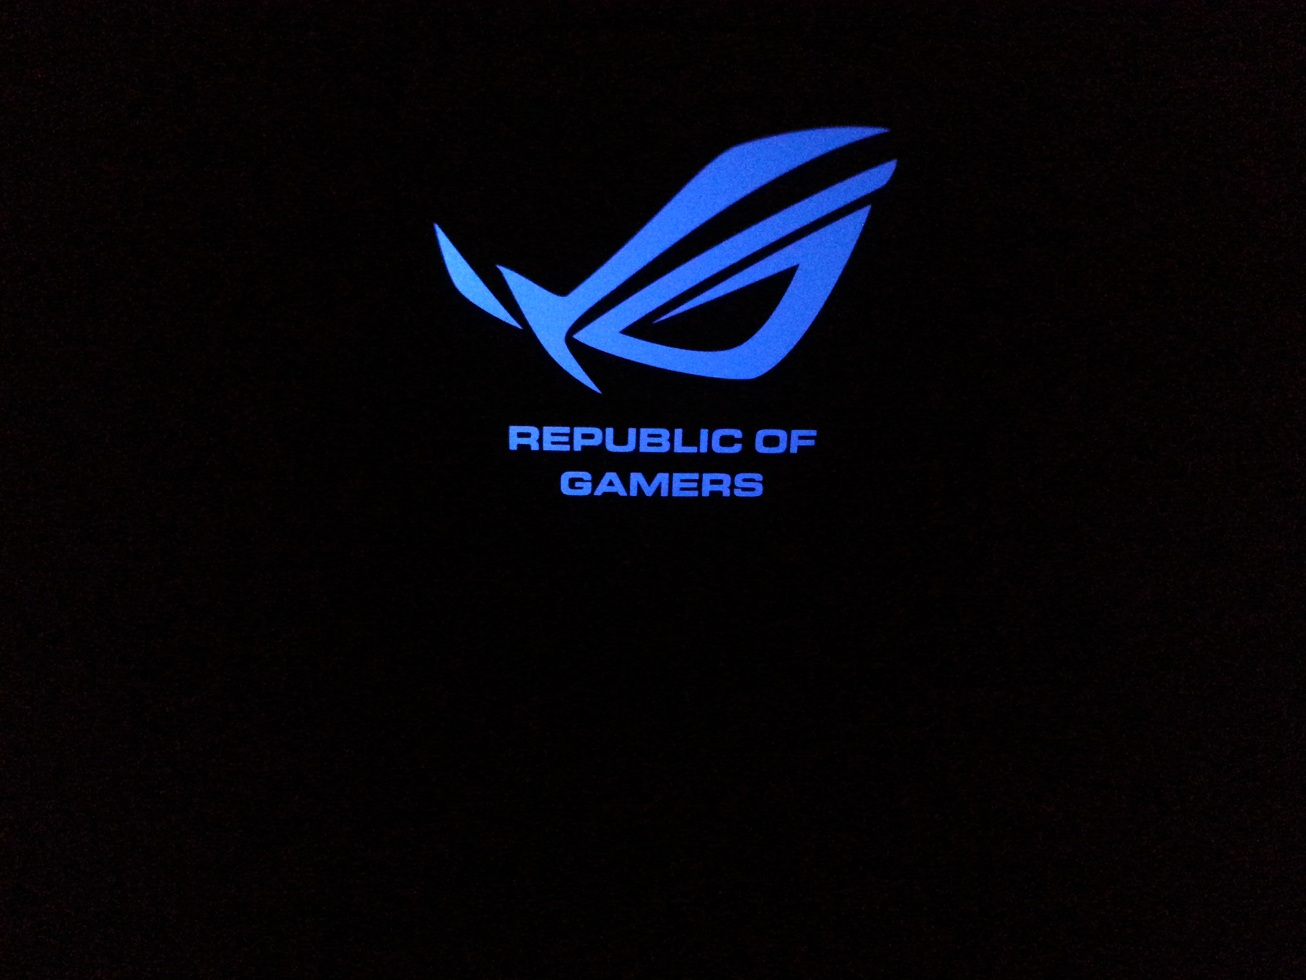 asus blue rog wallpaper - photo #3